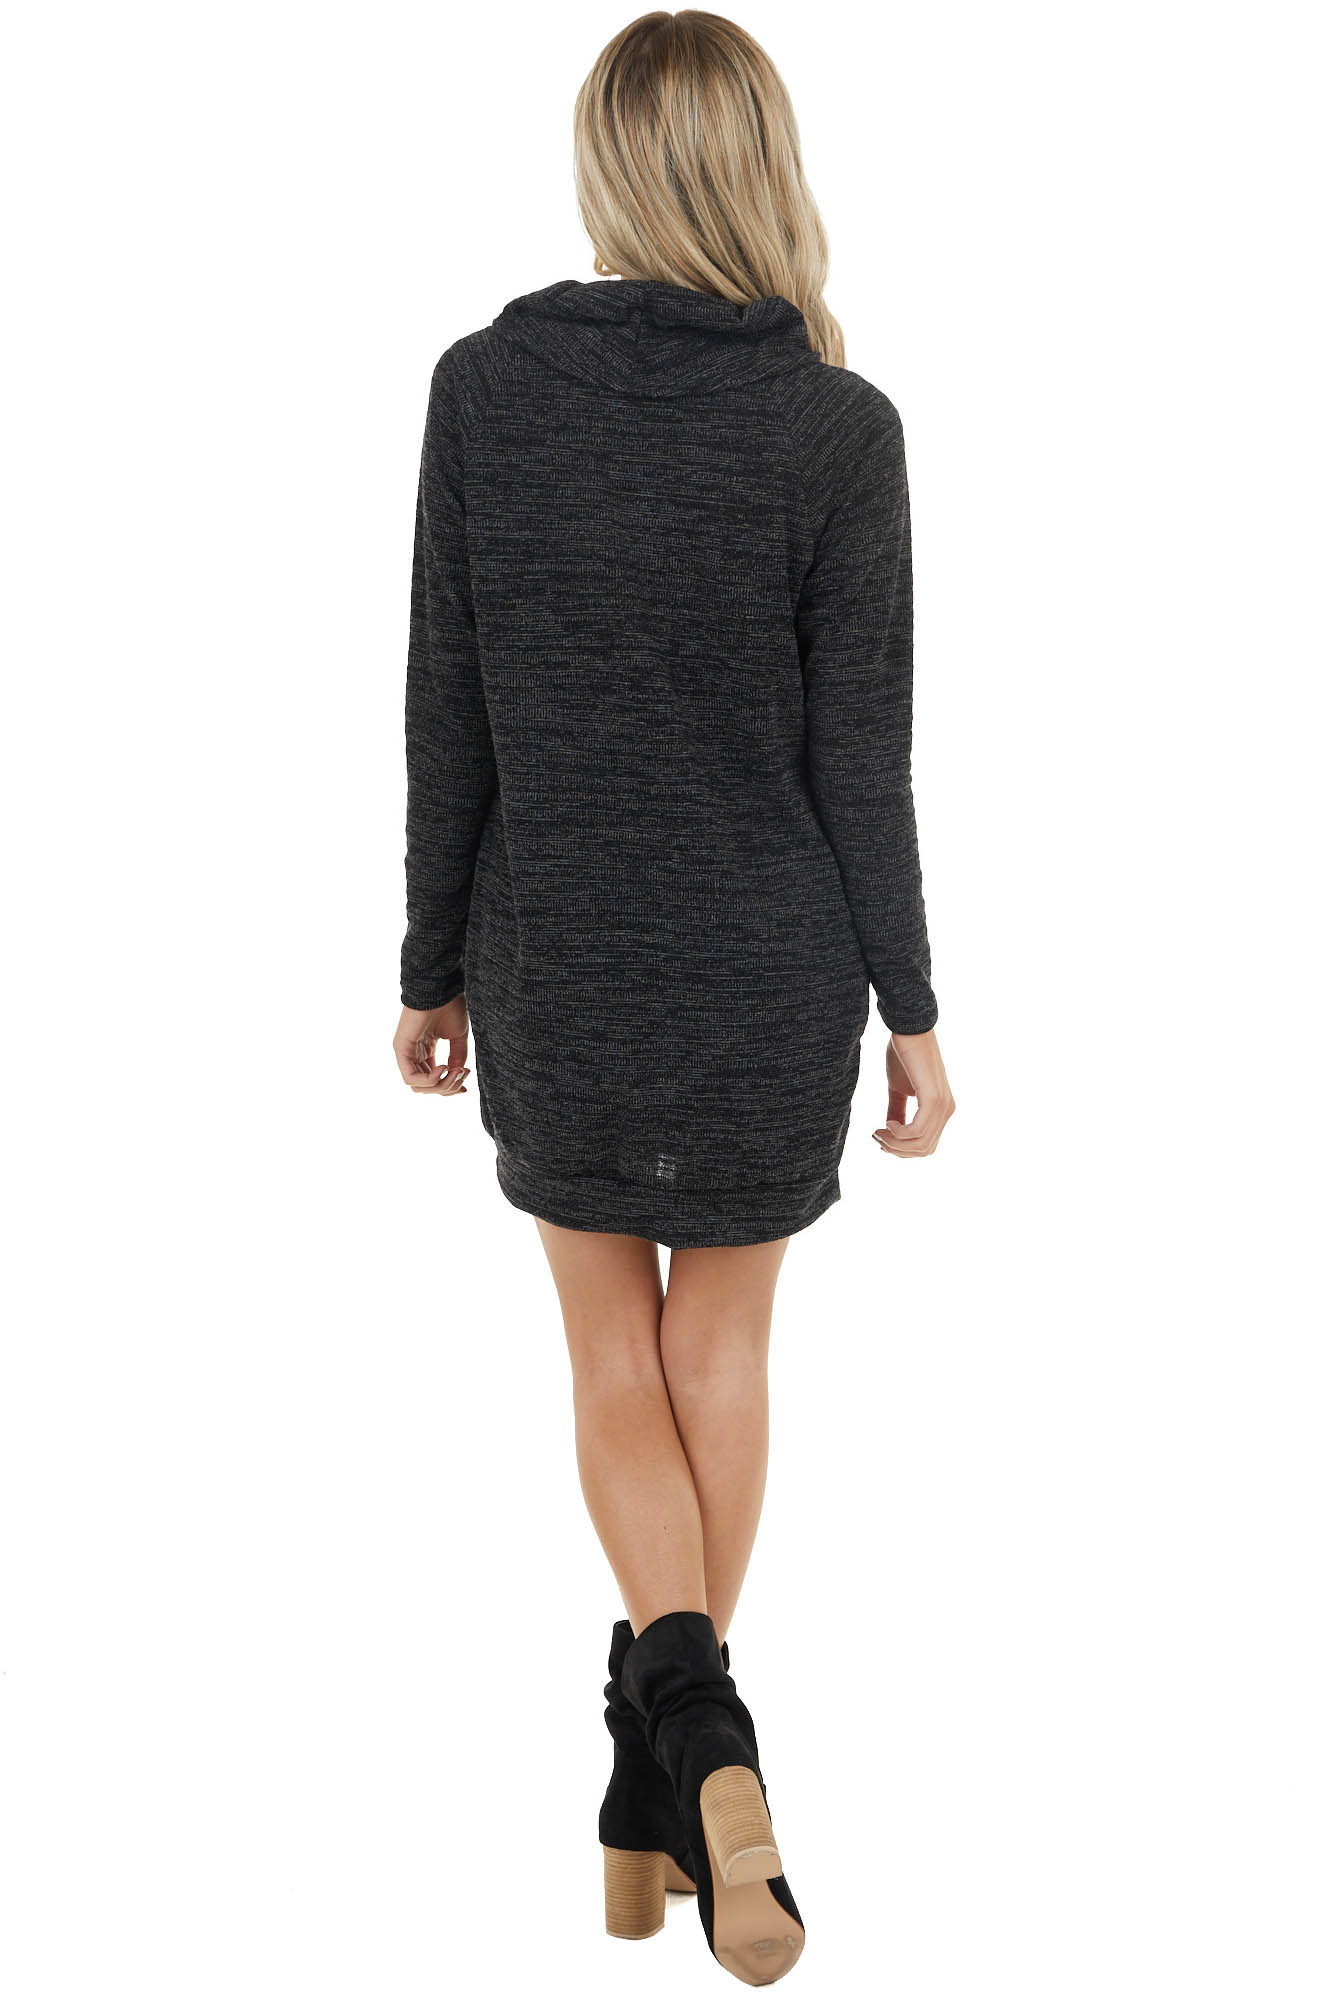 Black Long Sleeve Stretchy Knit Mini Dress with Cowl Neck